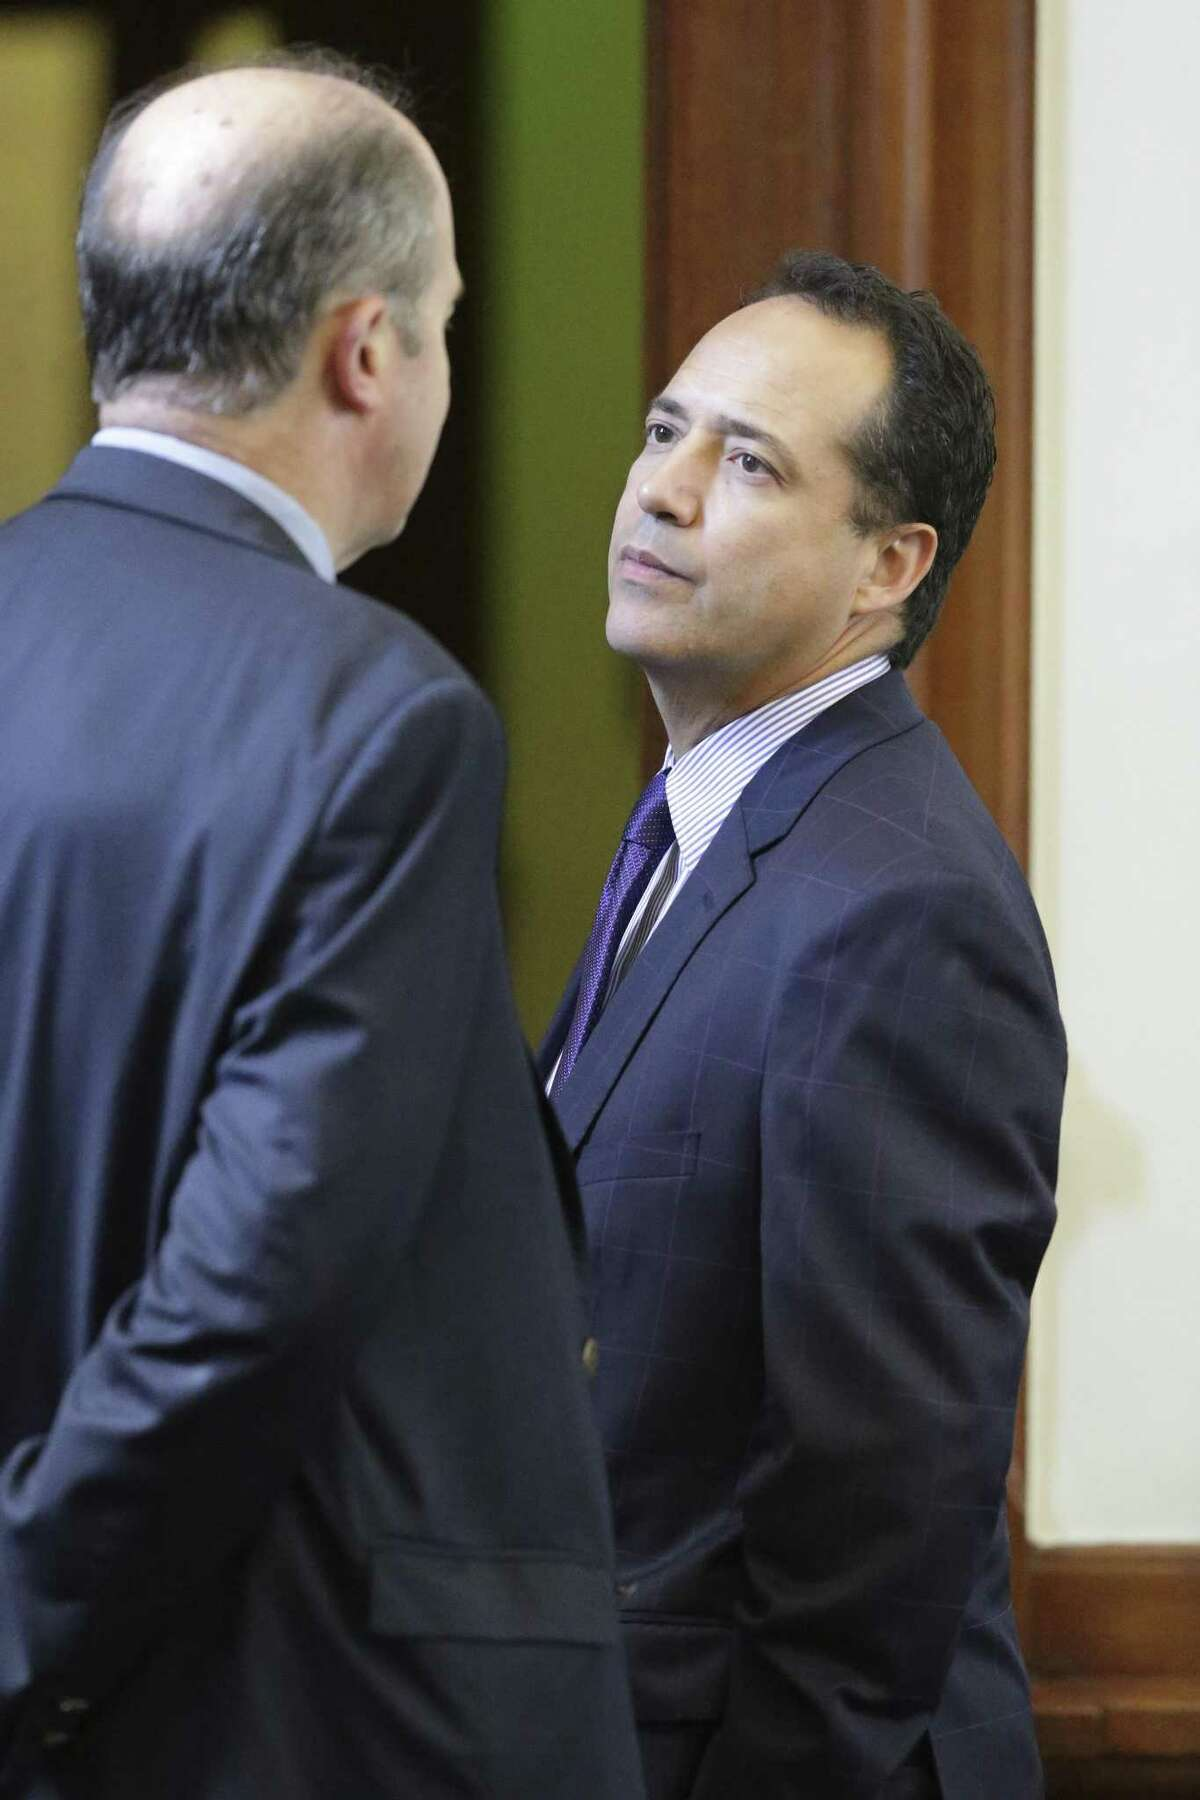 Senator Jose Menendez, D-San Antonio, listens to input just off the floor on the second day of the special legislative session on July 18, 2017.